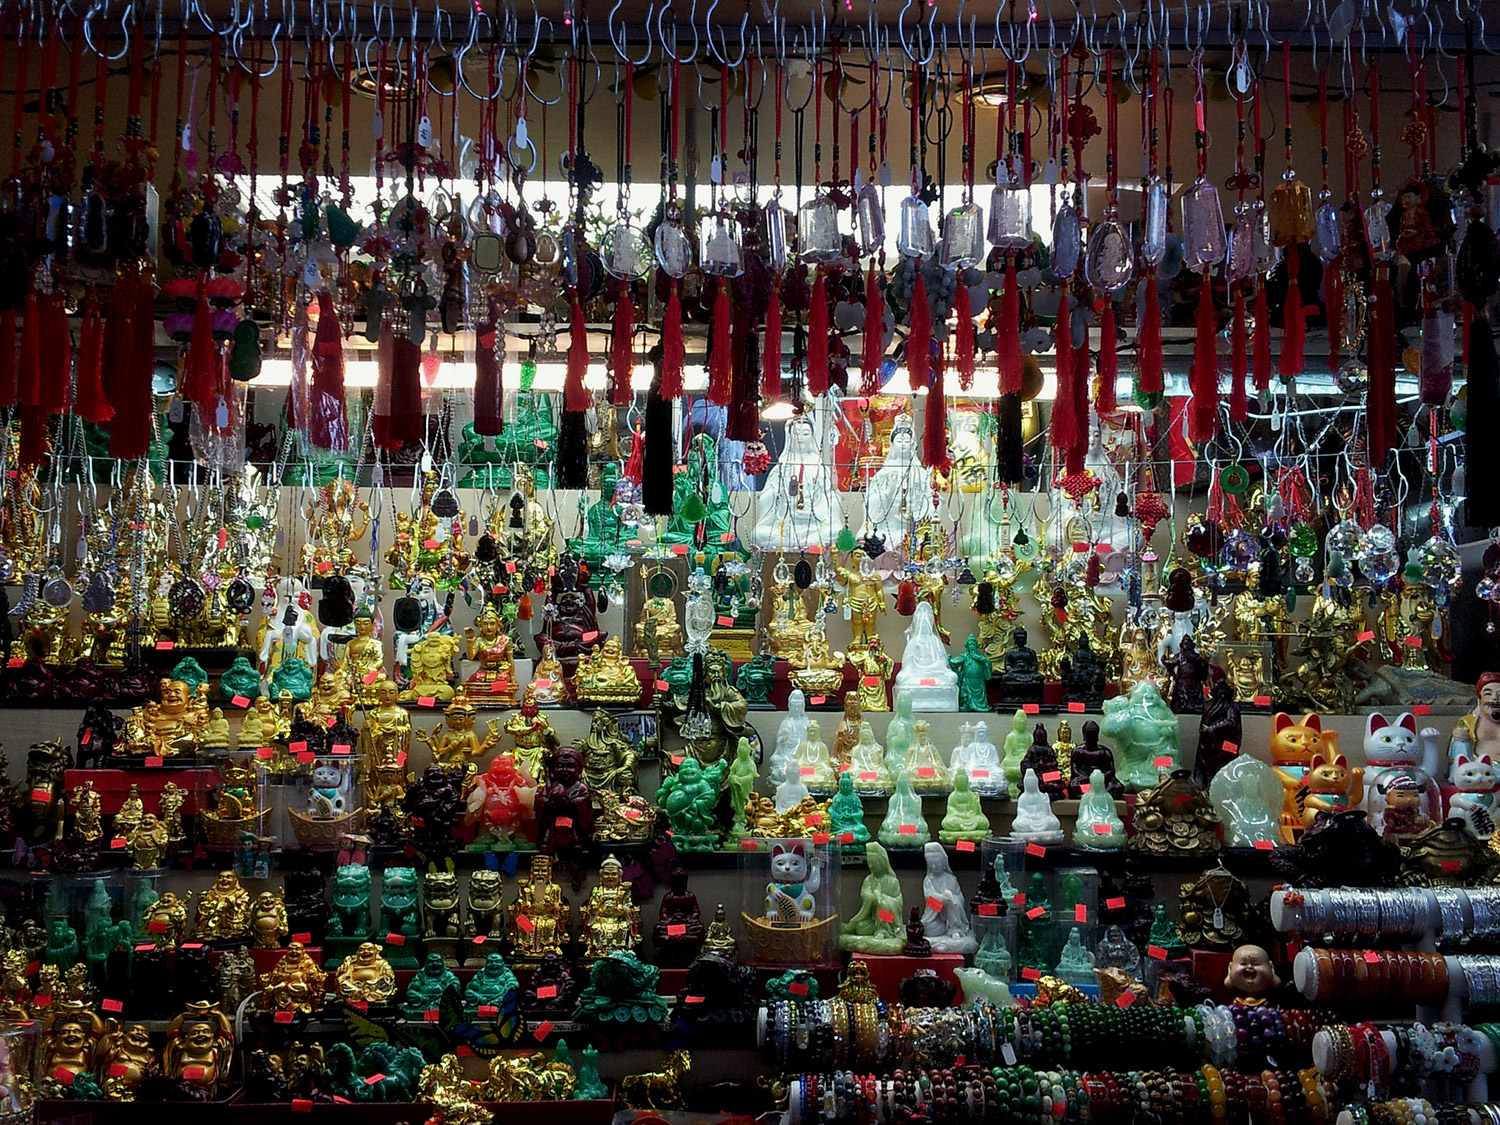 Lines of buddhas and other small statues in bright colors in a storefront.